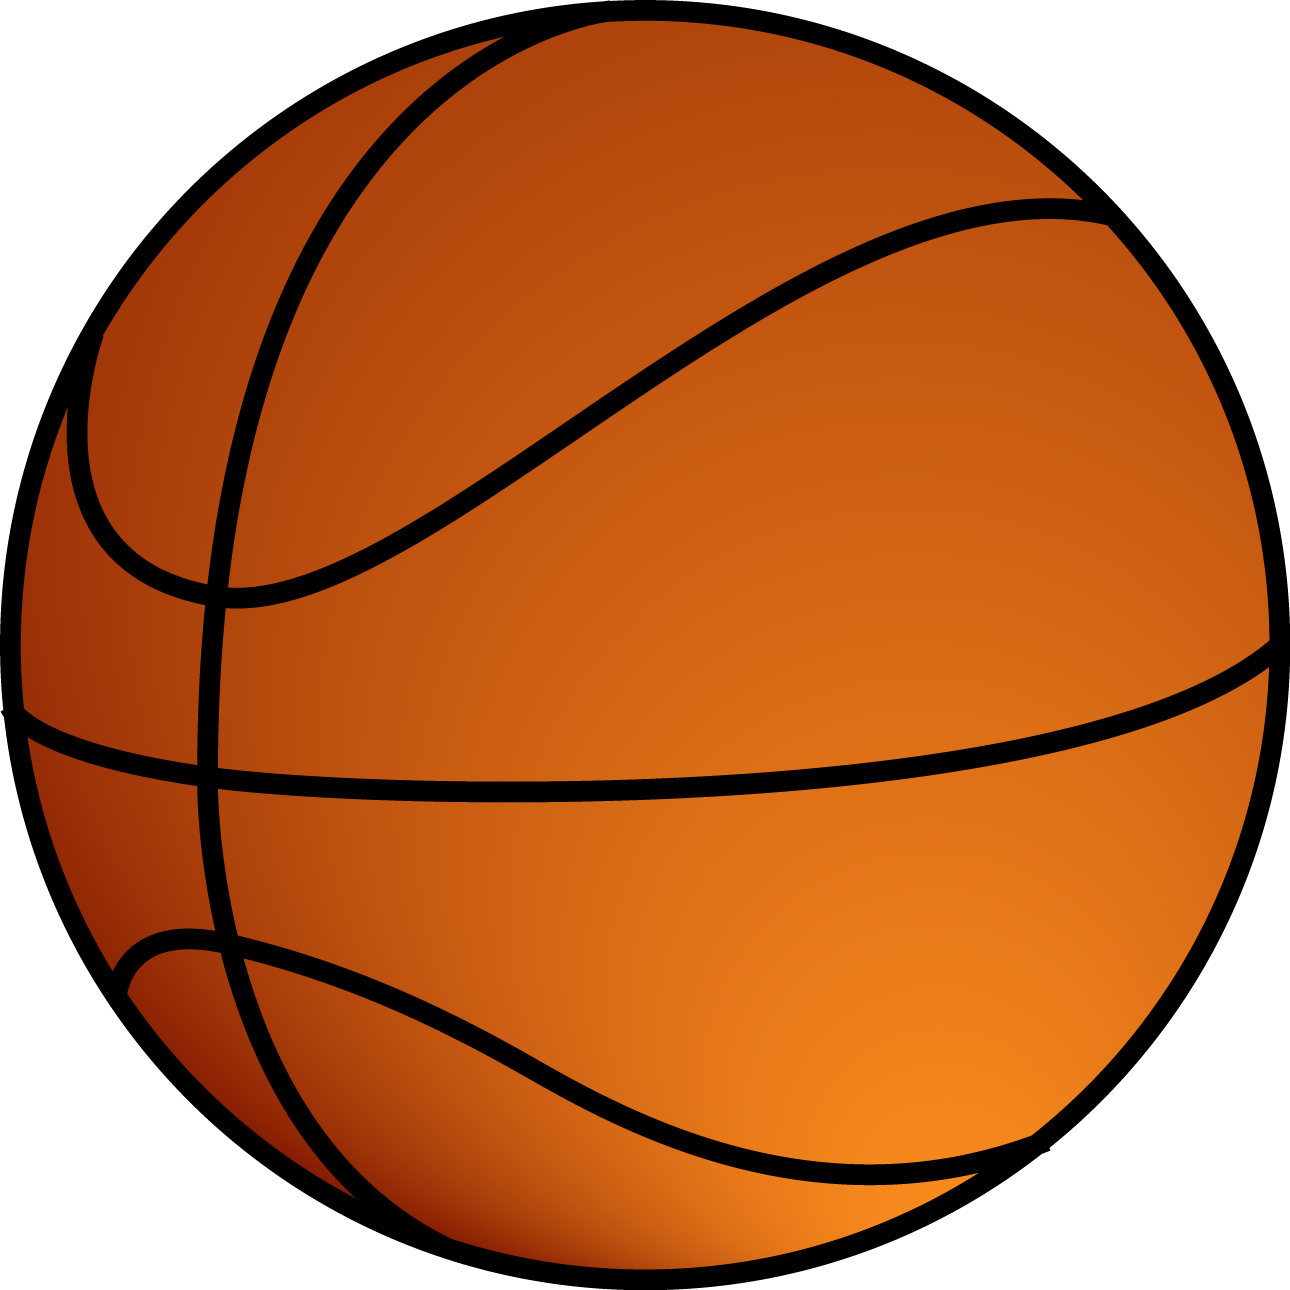 Basketball images free download. Ball png picture royalty free library